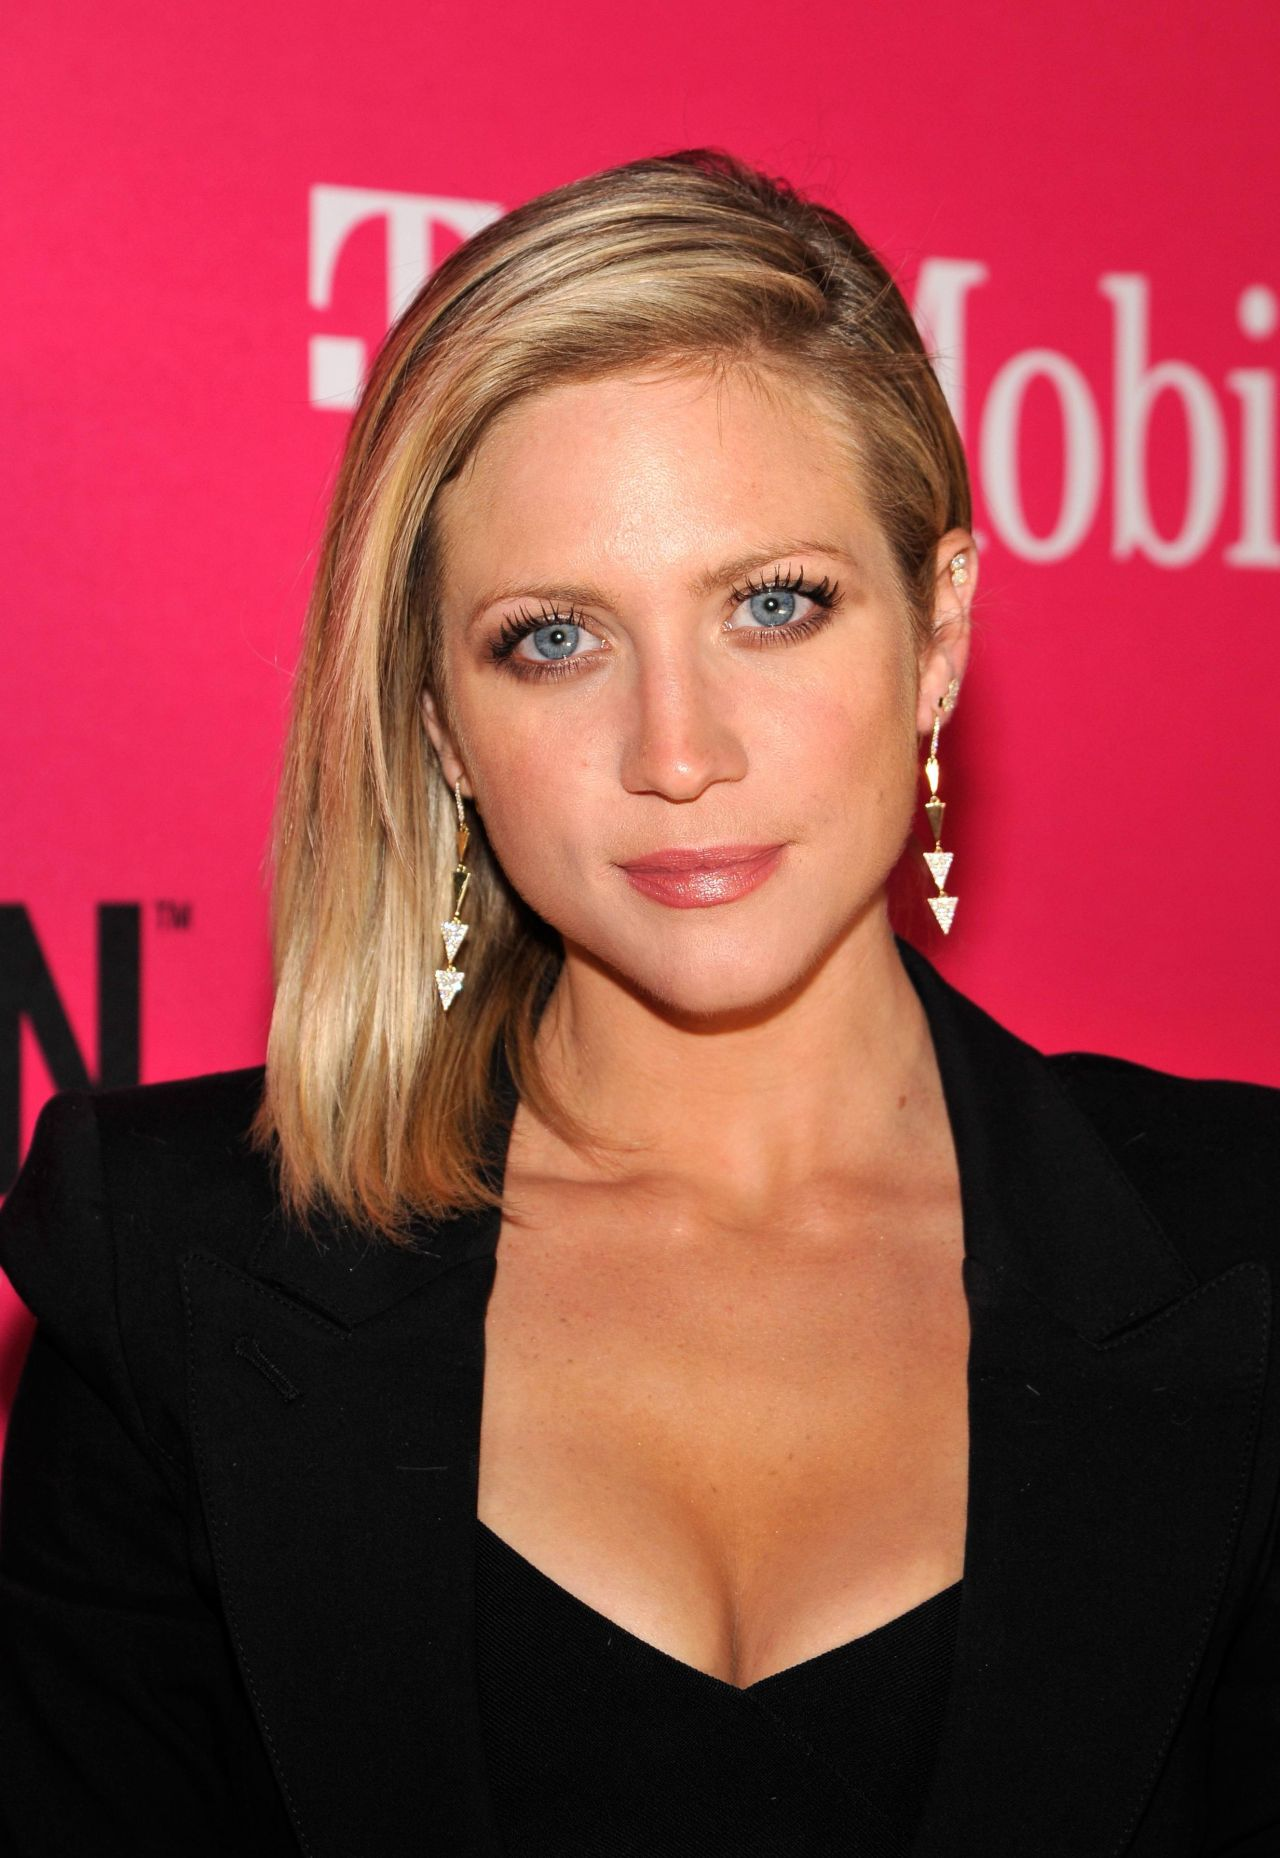 Brittany Snow – T-Mobile Un-Carrier X, November 2015 Brittany Snow